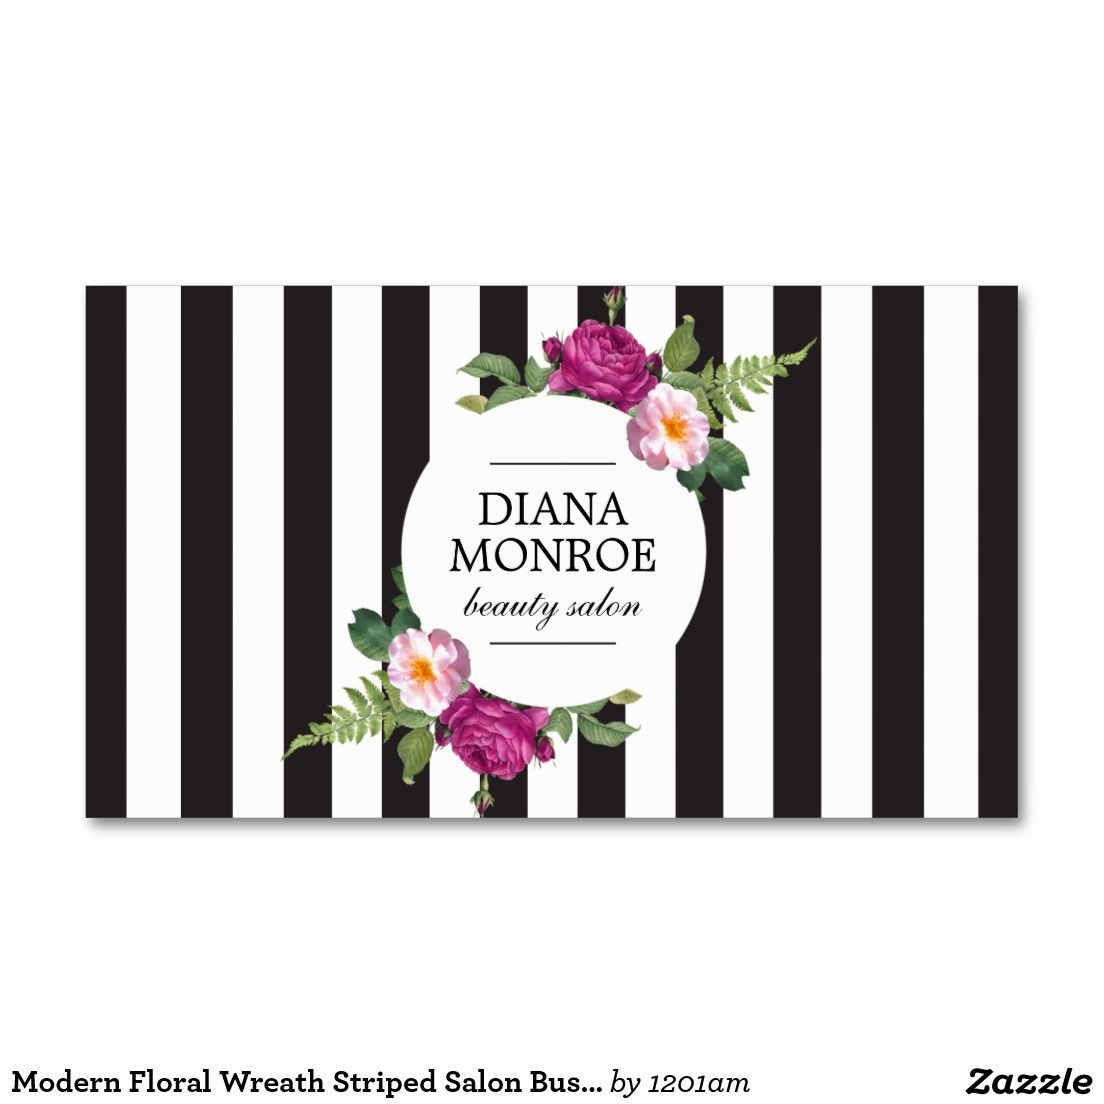 Modern floral wreath striped salon business card for hairstylist modern floral wreath striped salon business card for hairstylist hair salon makeup artist reheart Gallery